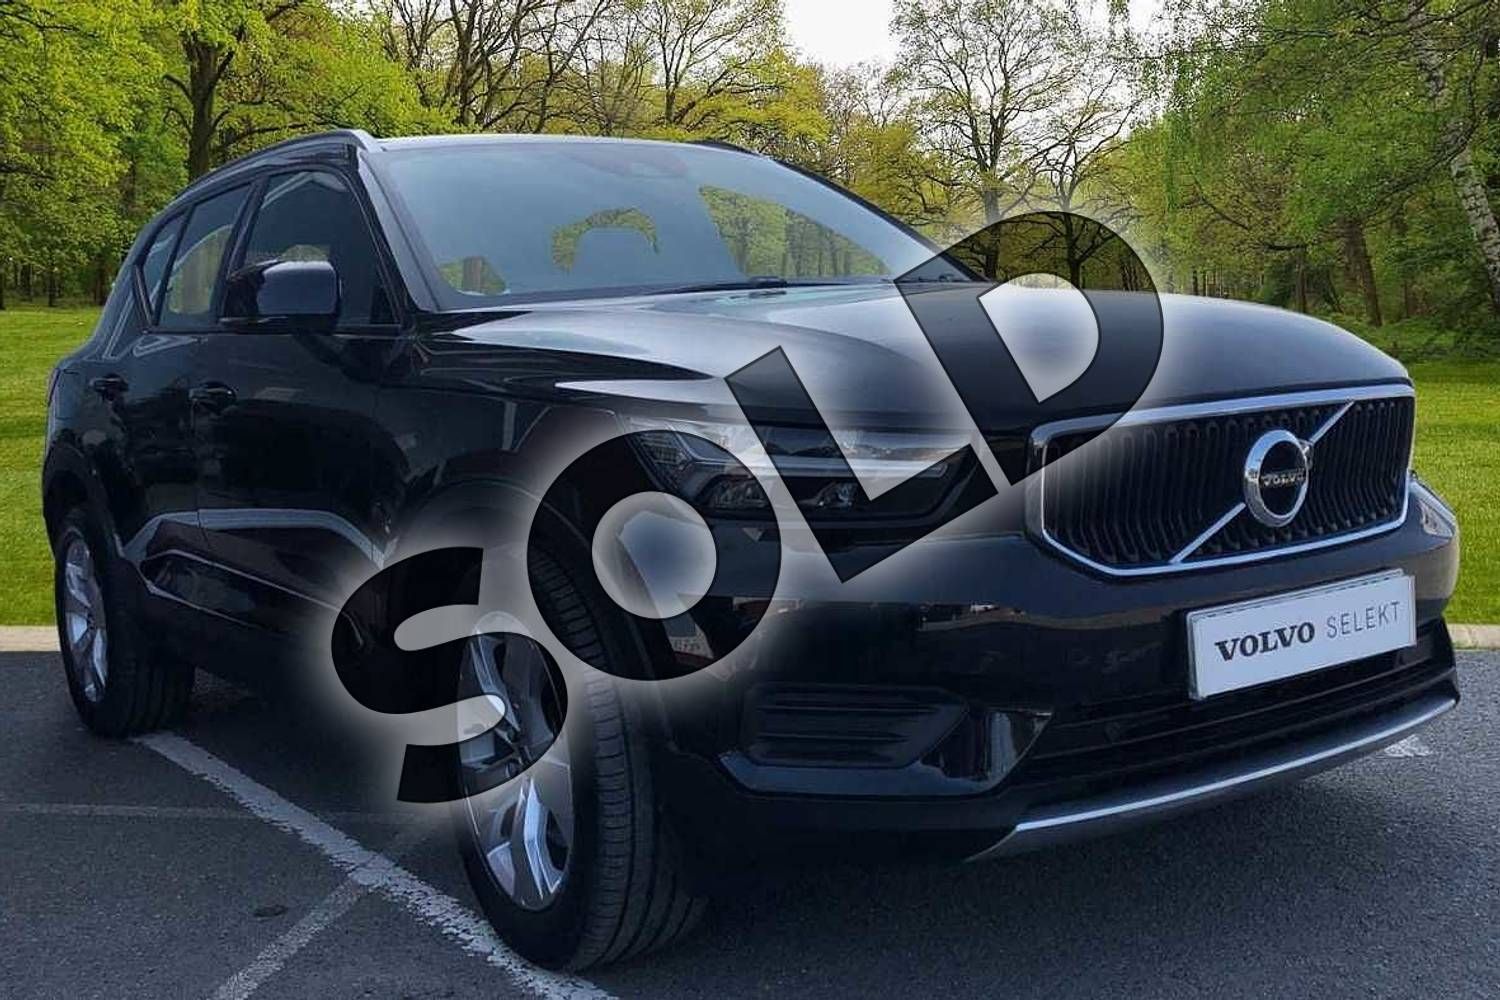 2018 Volvo XC40 Estate 2.0 T4 Momentum 5dr AWD Geartronic in Onyx Black at Listers Volvo Worcester